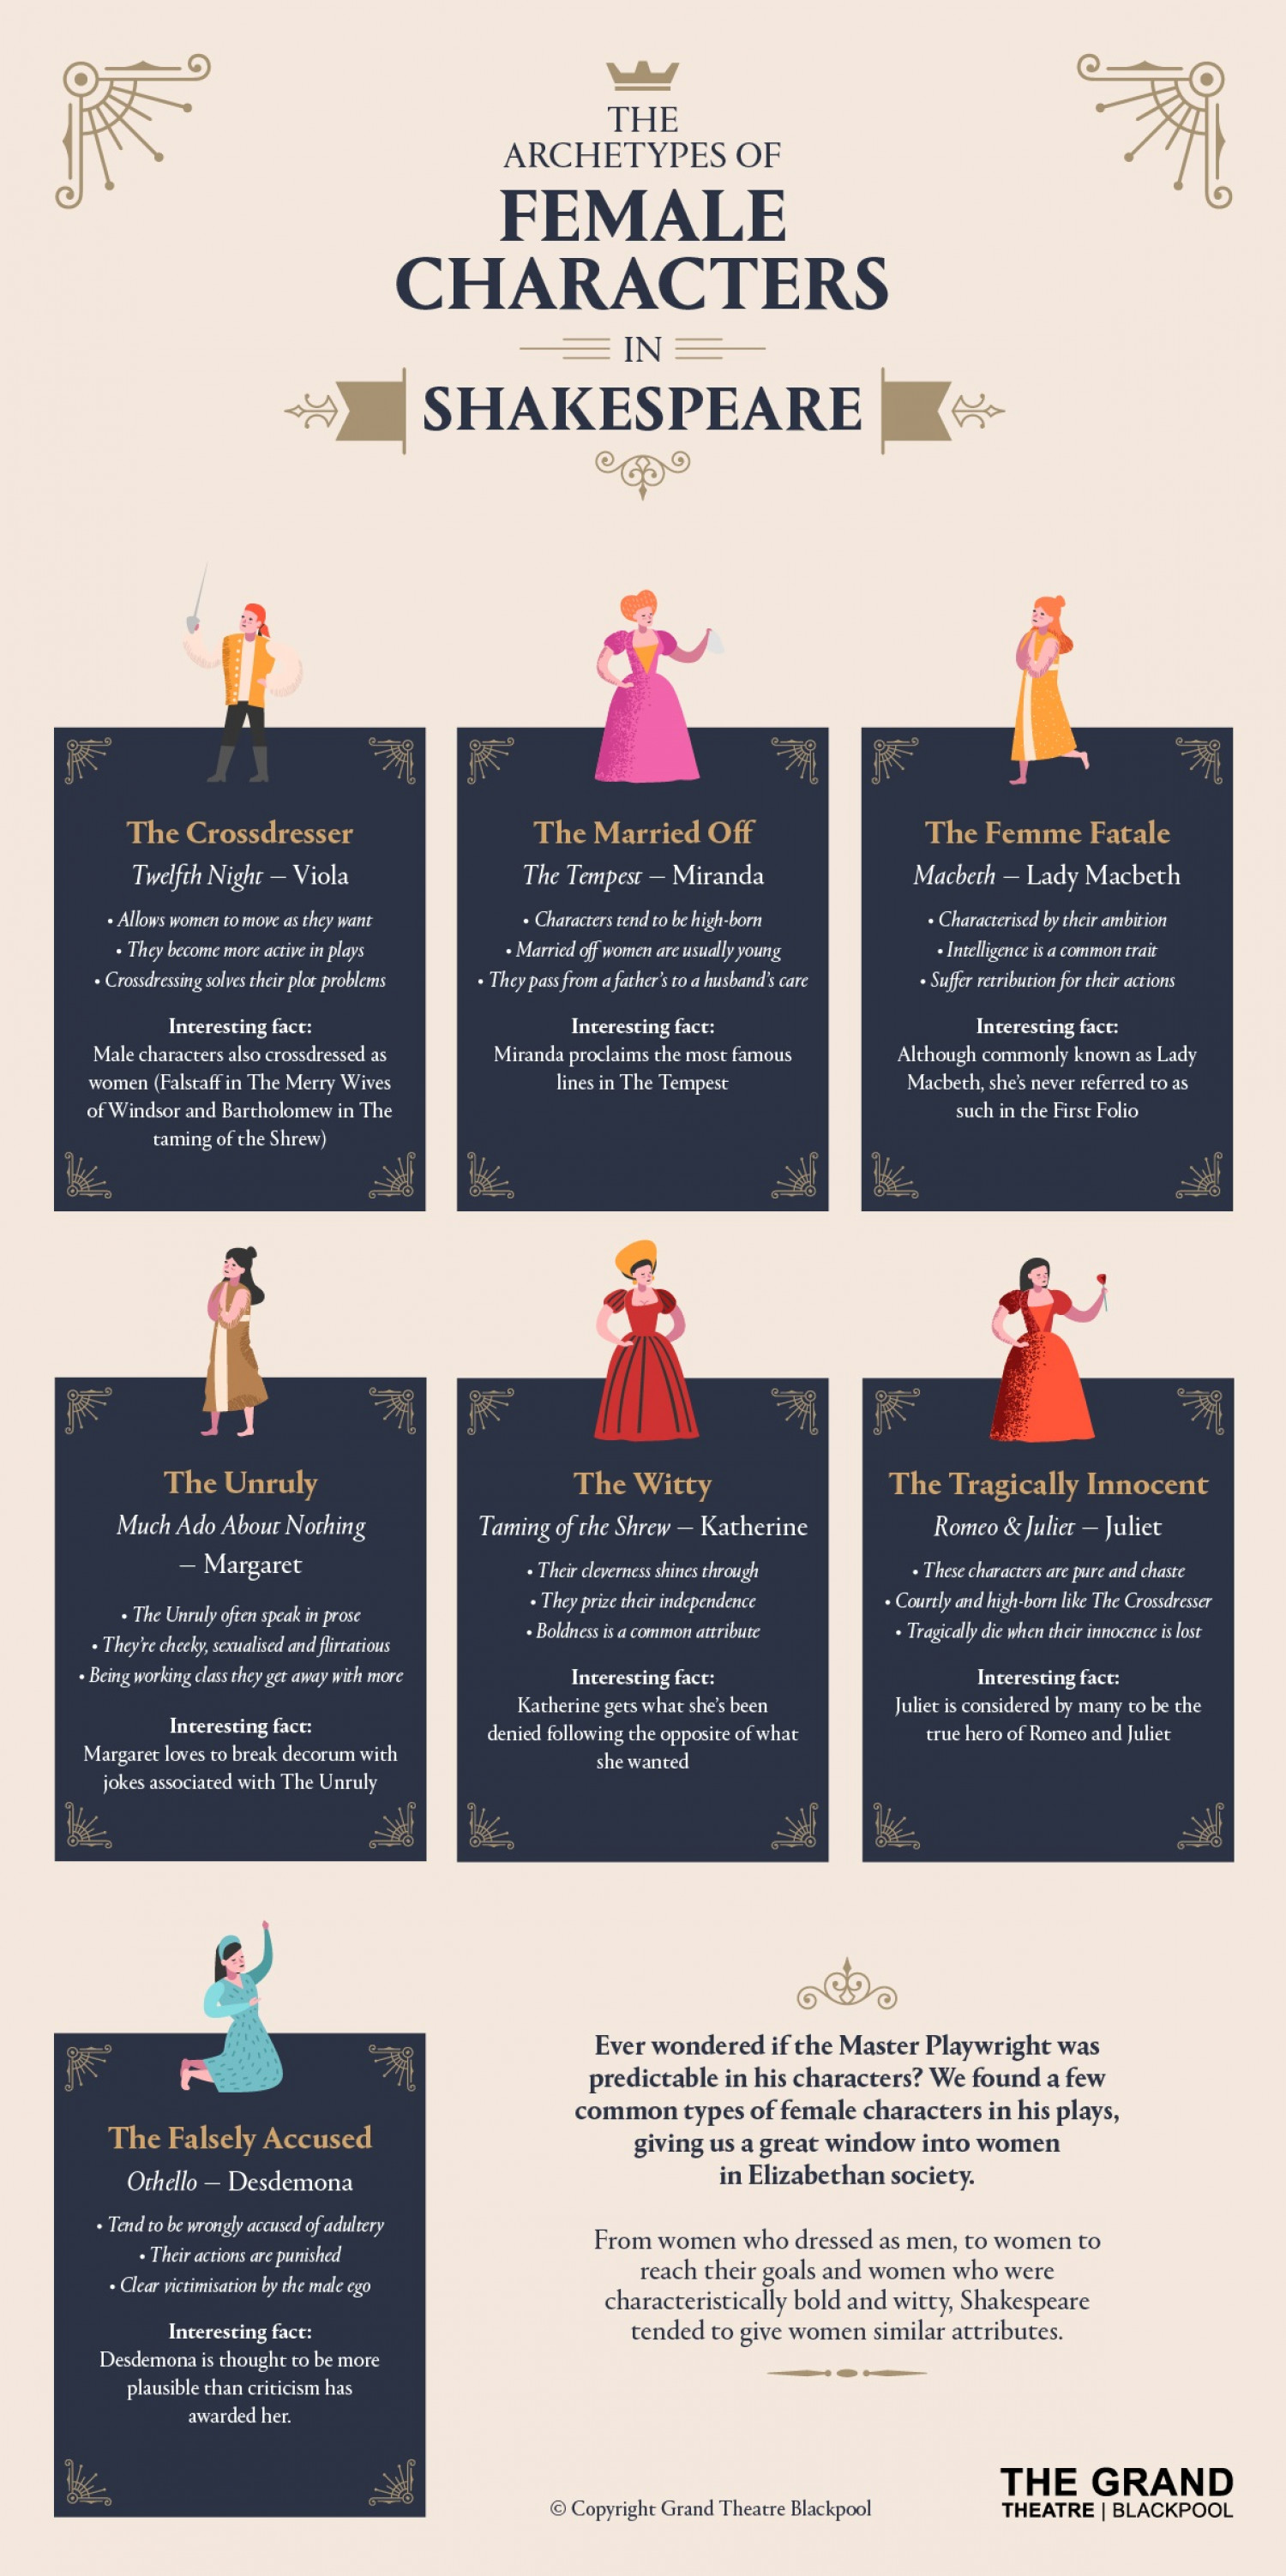 The Archetypes of Female Characters in Shakespeare Infographic